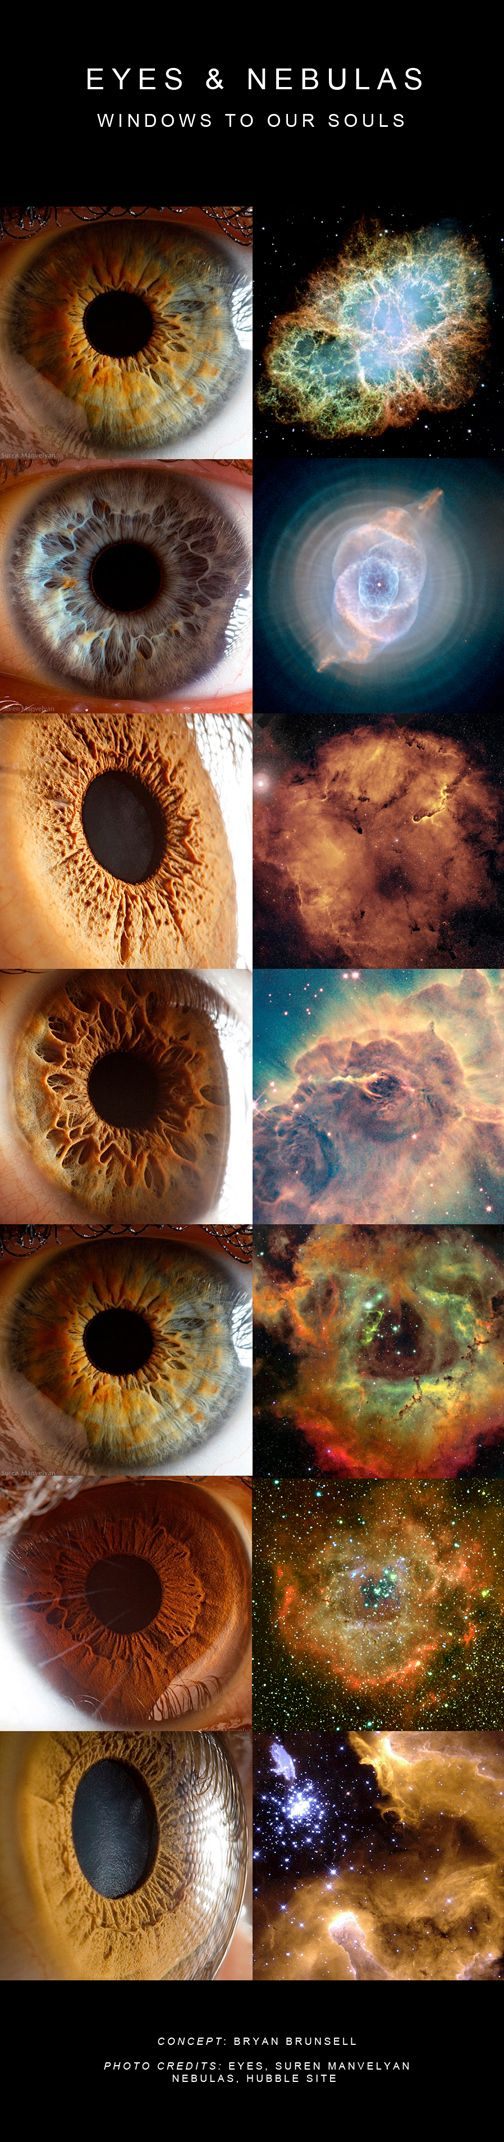 #eyes beautiful cosmos universe How fascinating